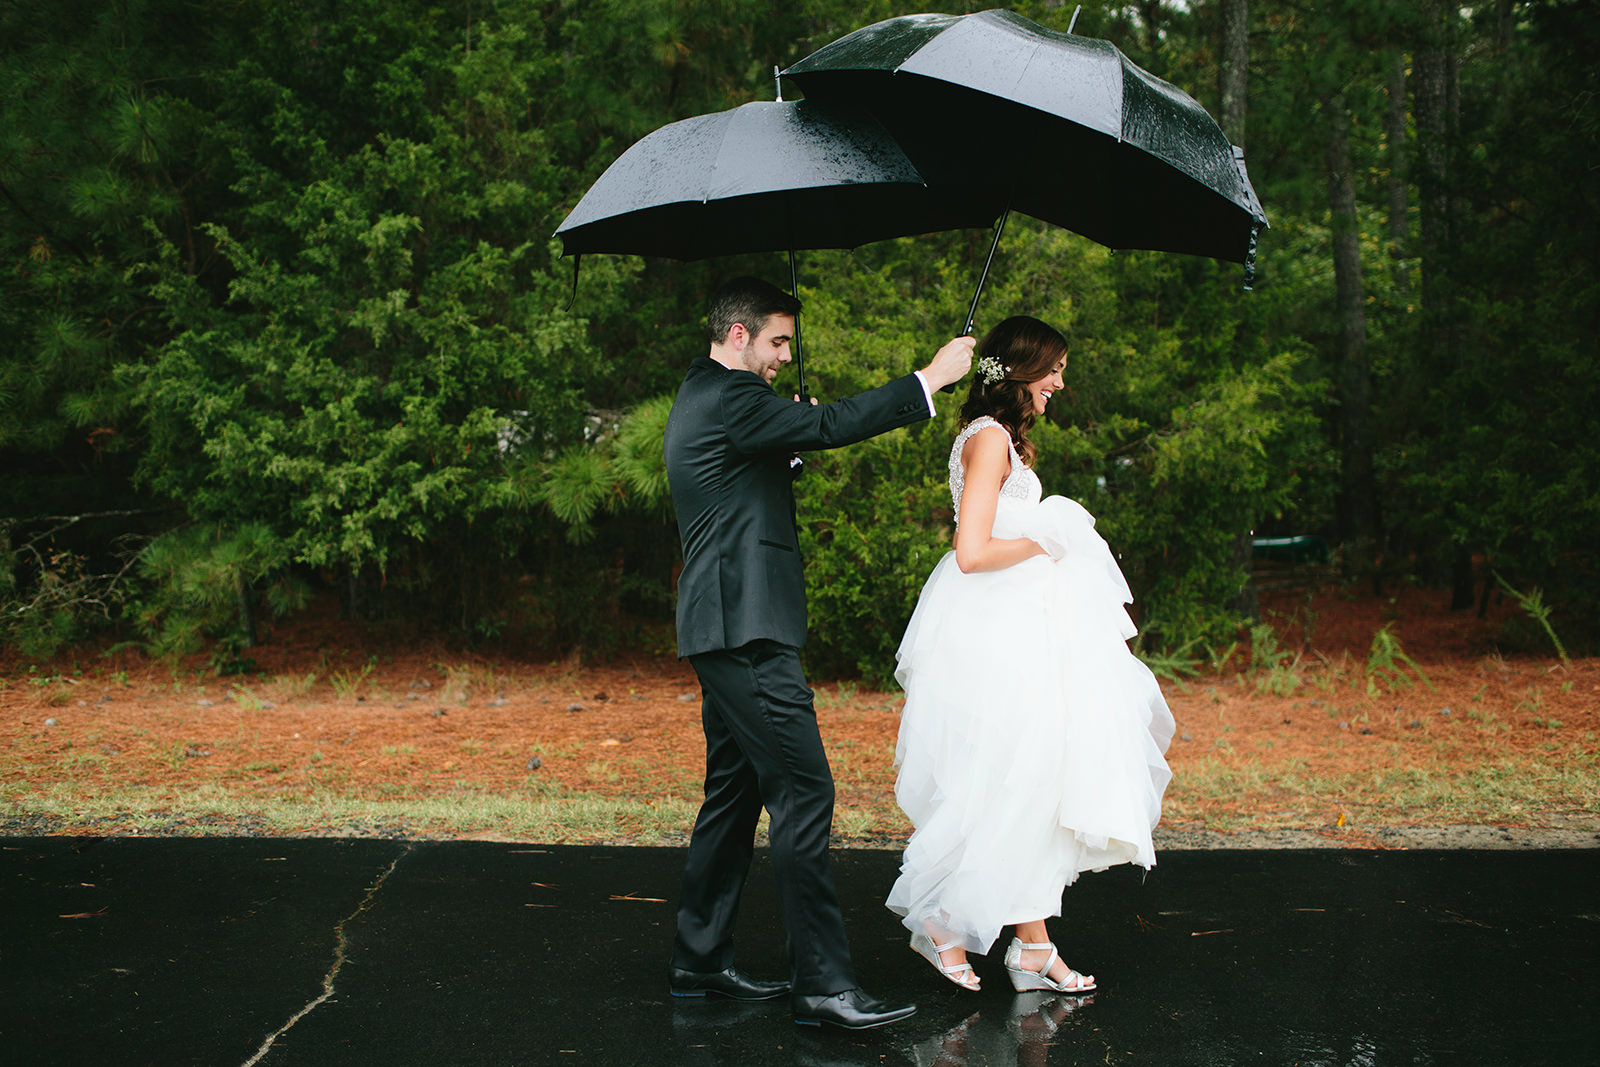 rain on your wedding